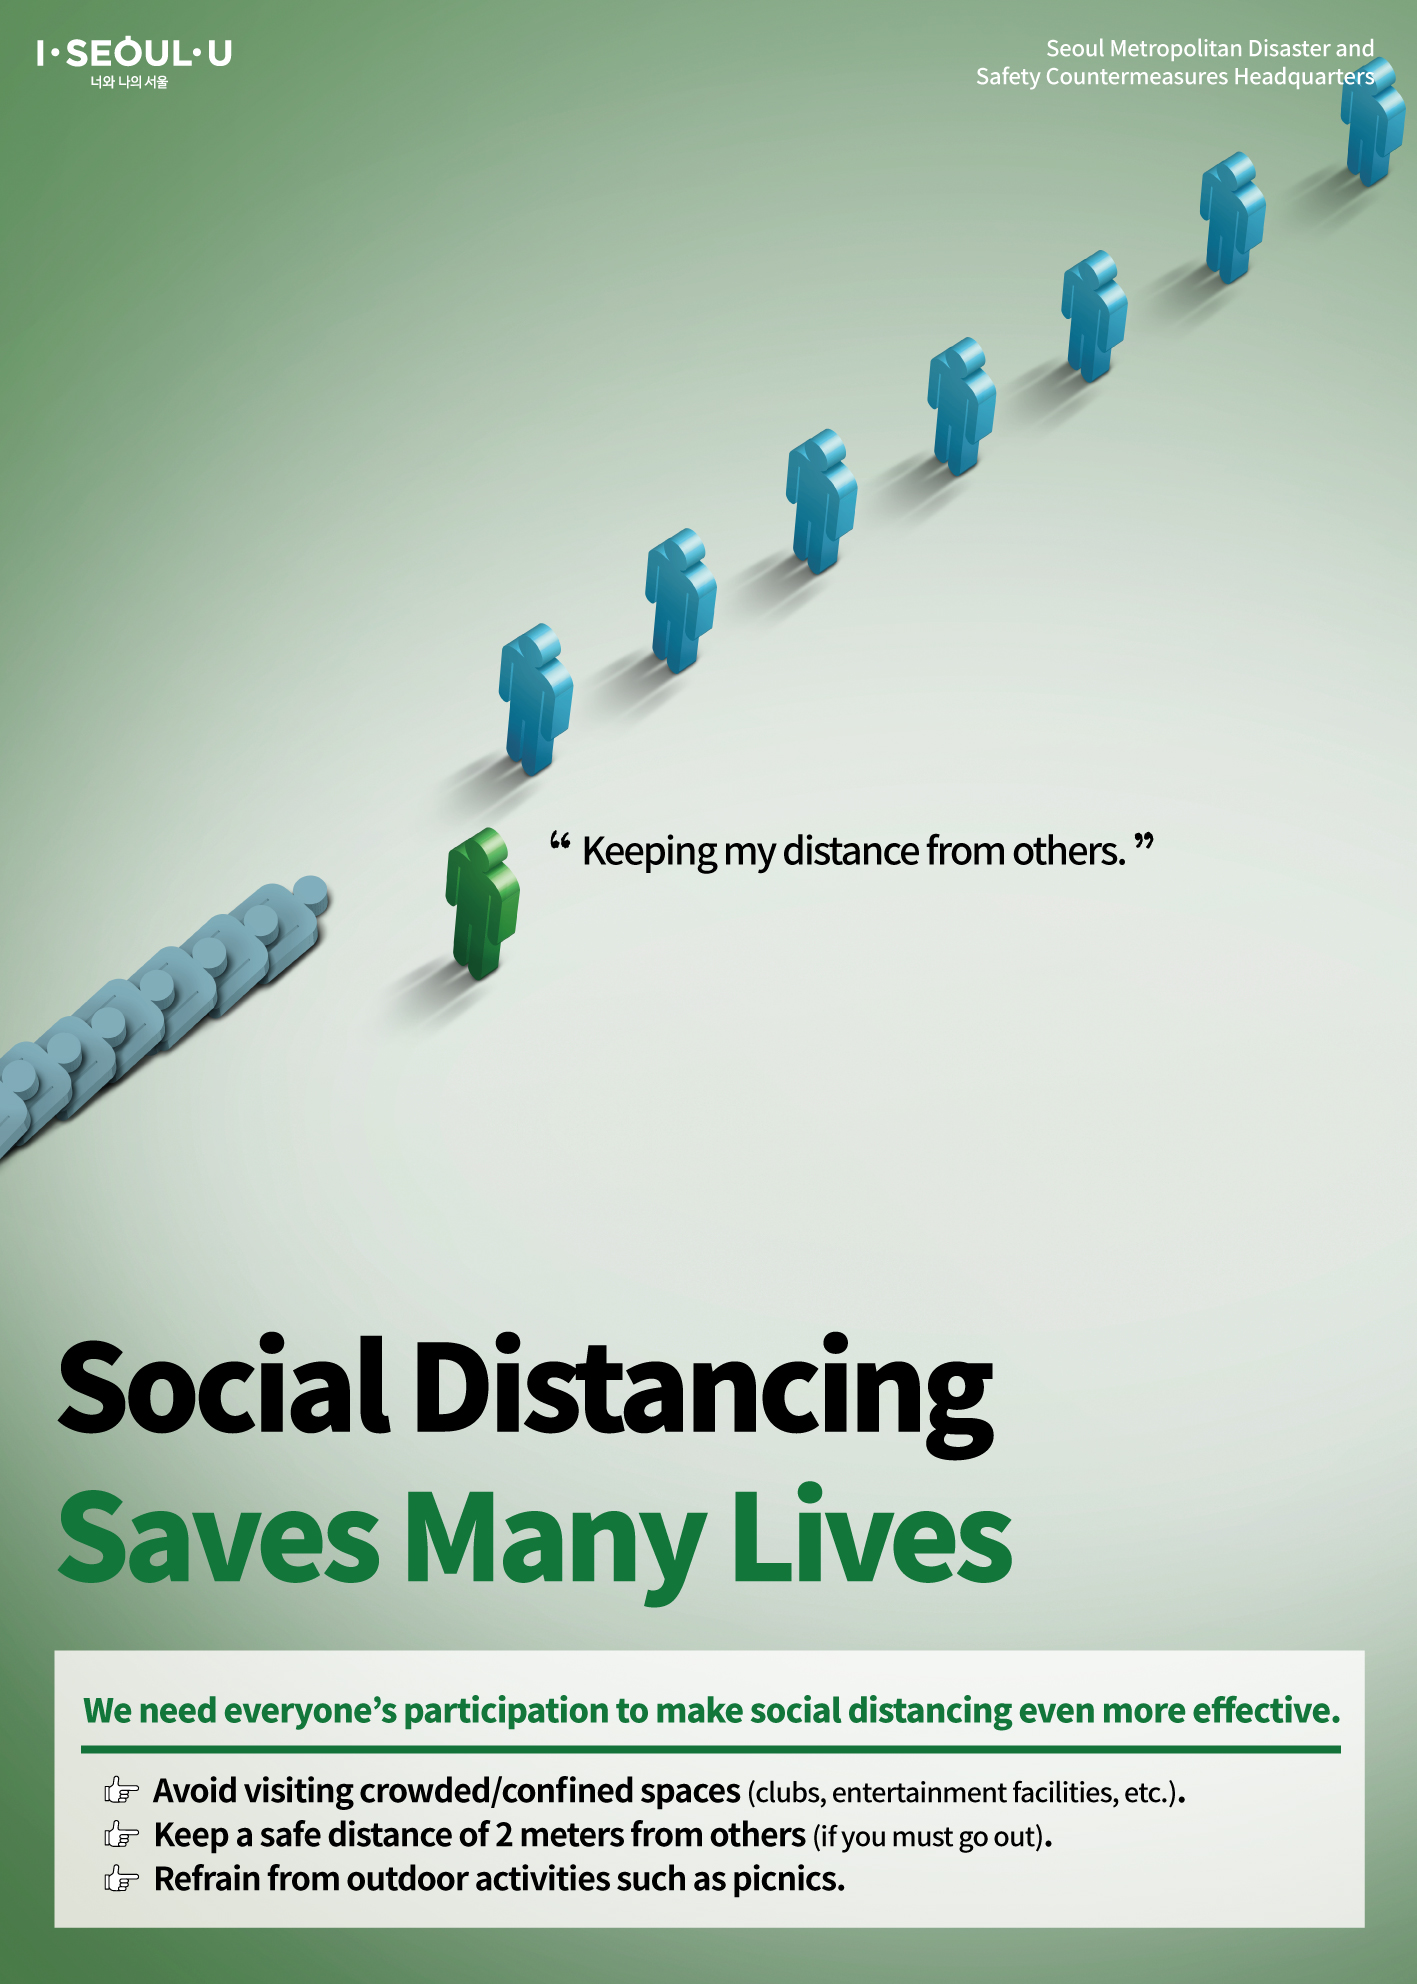 Social Distancing  Saves Many Lives We need everyone's participation to make social distancing even more effective. Avoid visiting crowded/confined spaces (clubs, entertainment facilities, etc.). Keep a safe distance of 2 meters from others (if you must go out). Refrain from outdoor activities such as picnics.